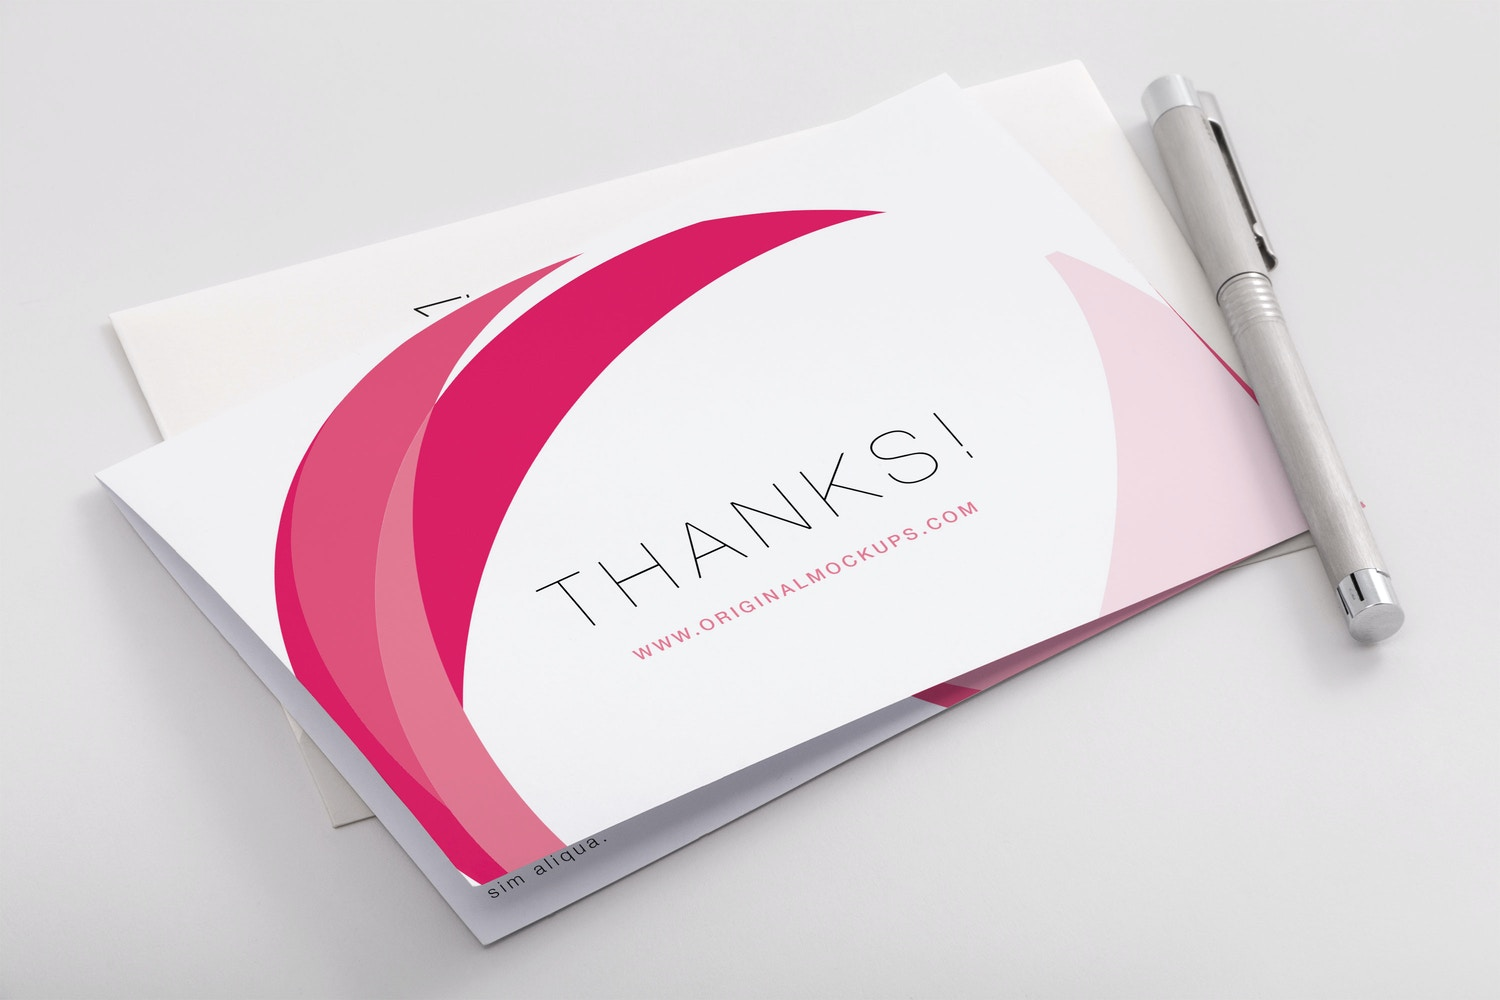 Bifold Thank You Card PSD Mockup 02 by Original Mockups on Original Mockups